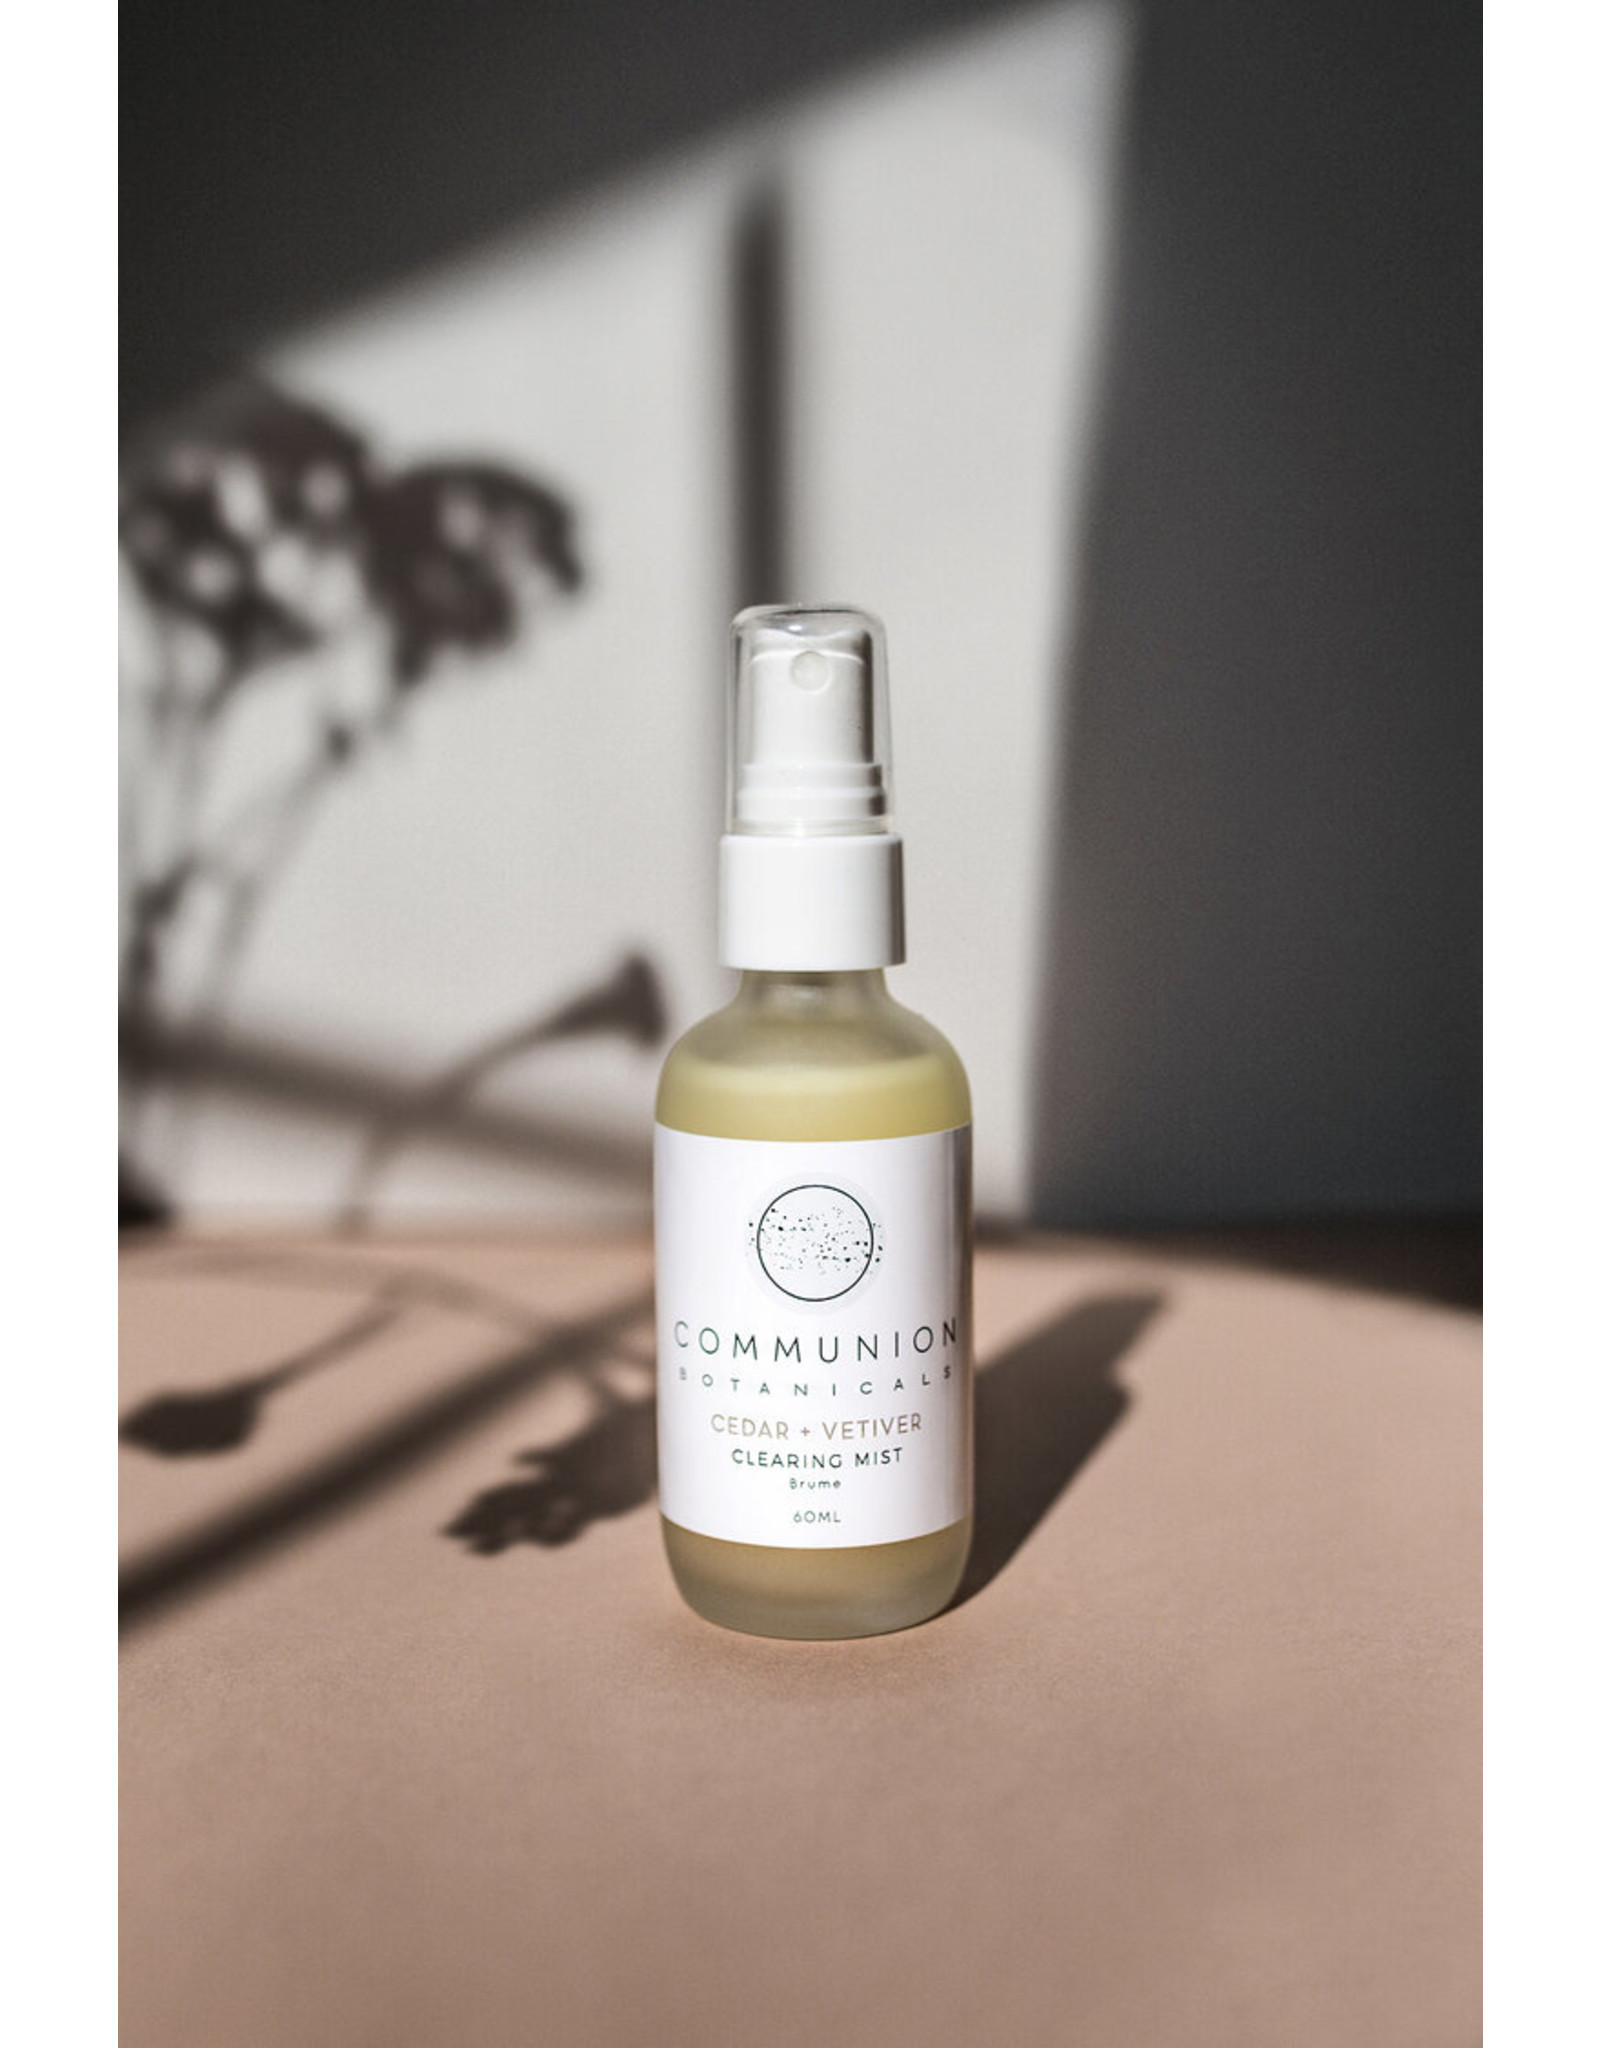 Communion Botanicals Cedar & Vetiver Clearing Mist